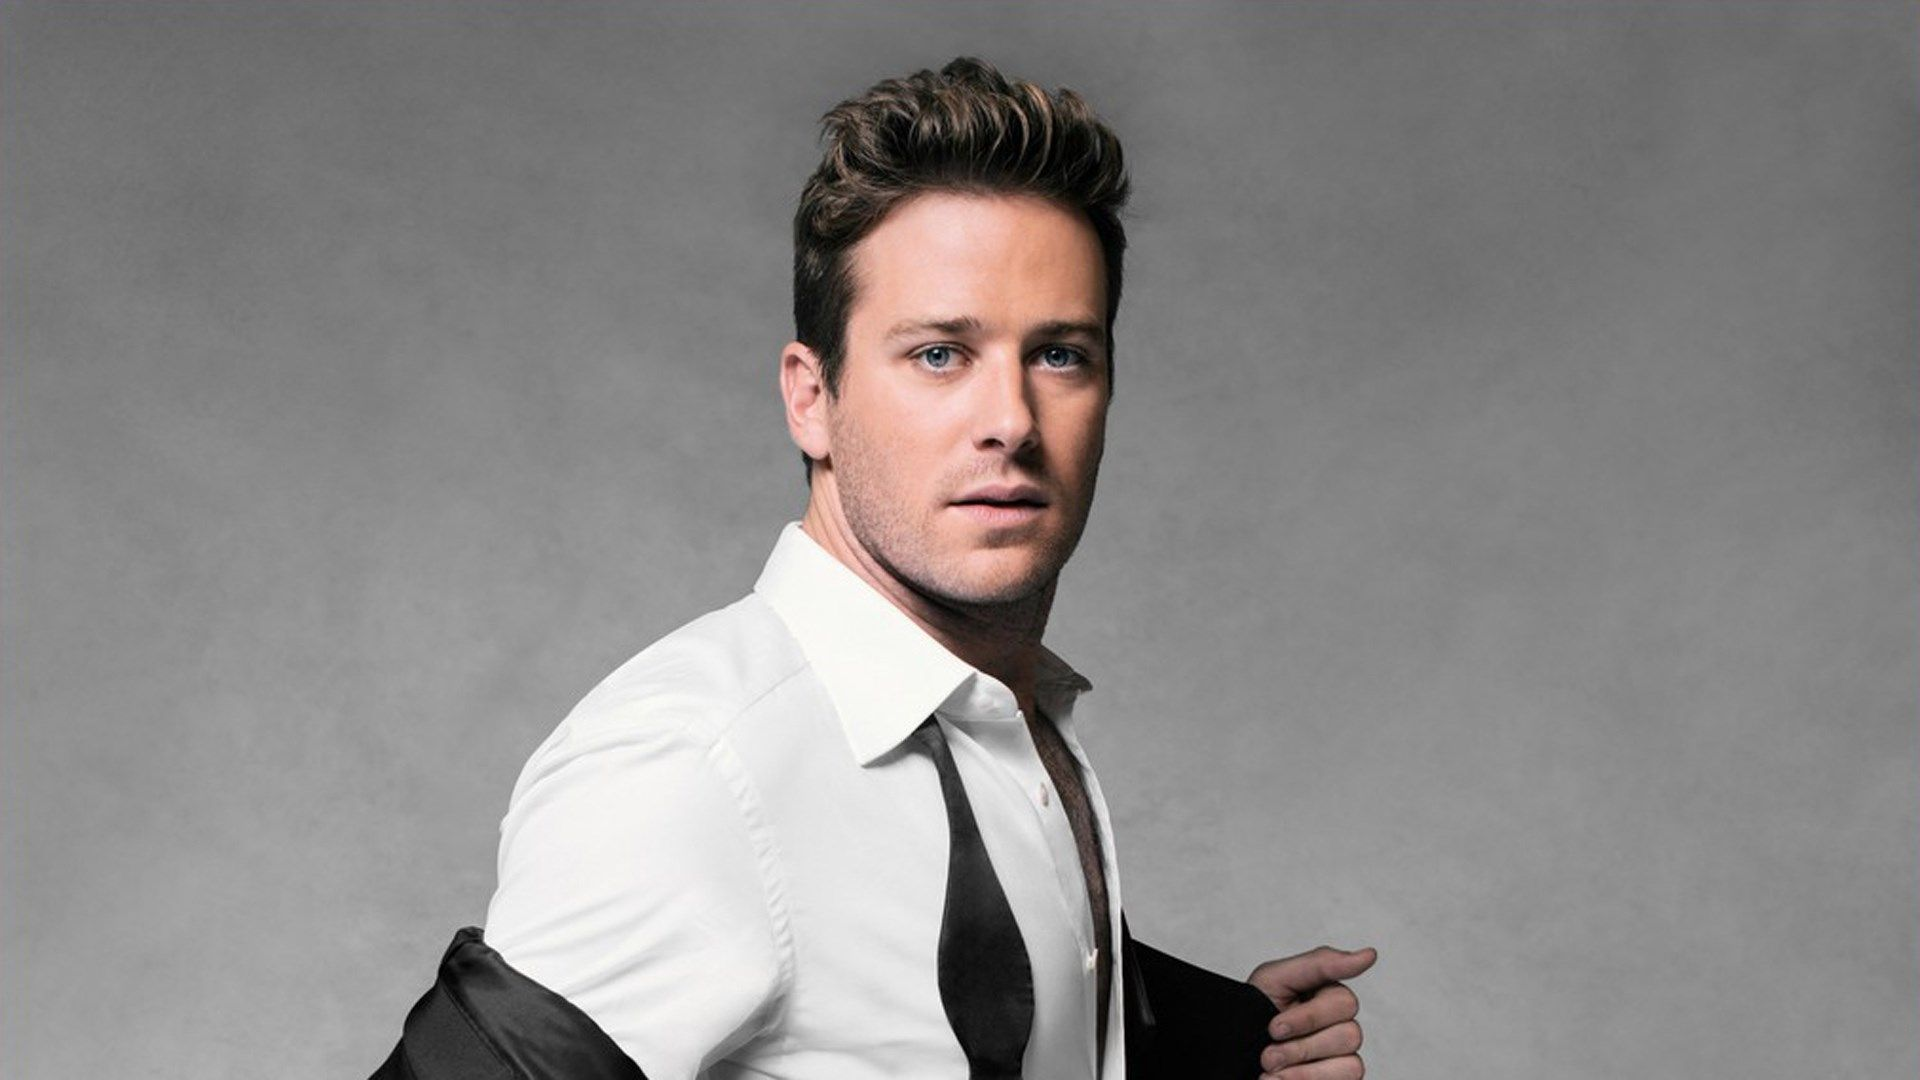 2016 03 24 Armie Hammer Wallpapers 1080p High Quality 132329 Armie Hammer Hammer Celebrities Male